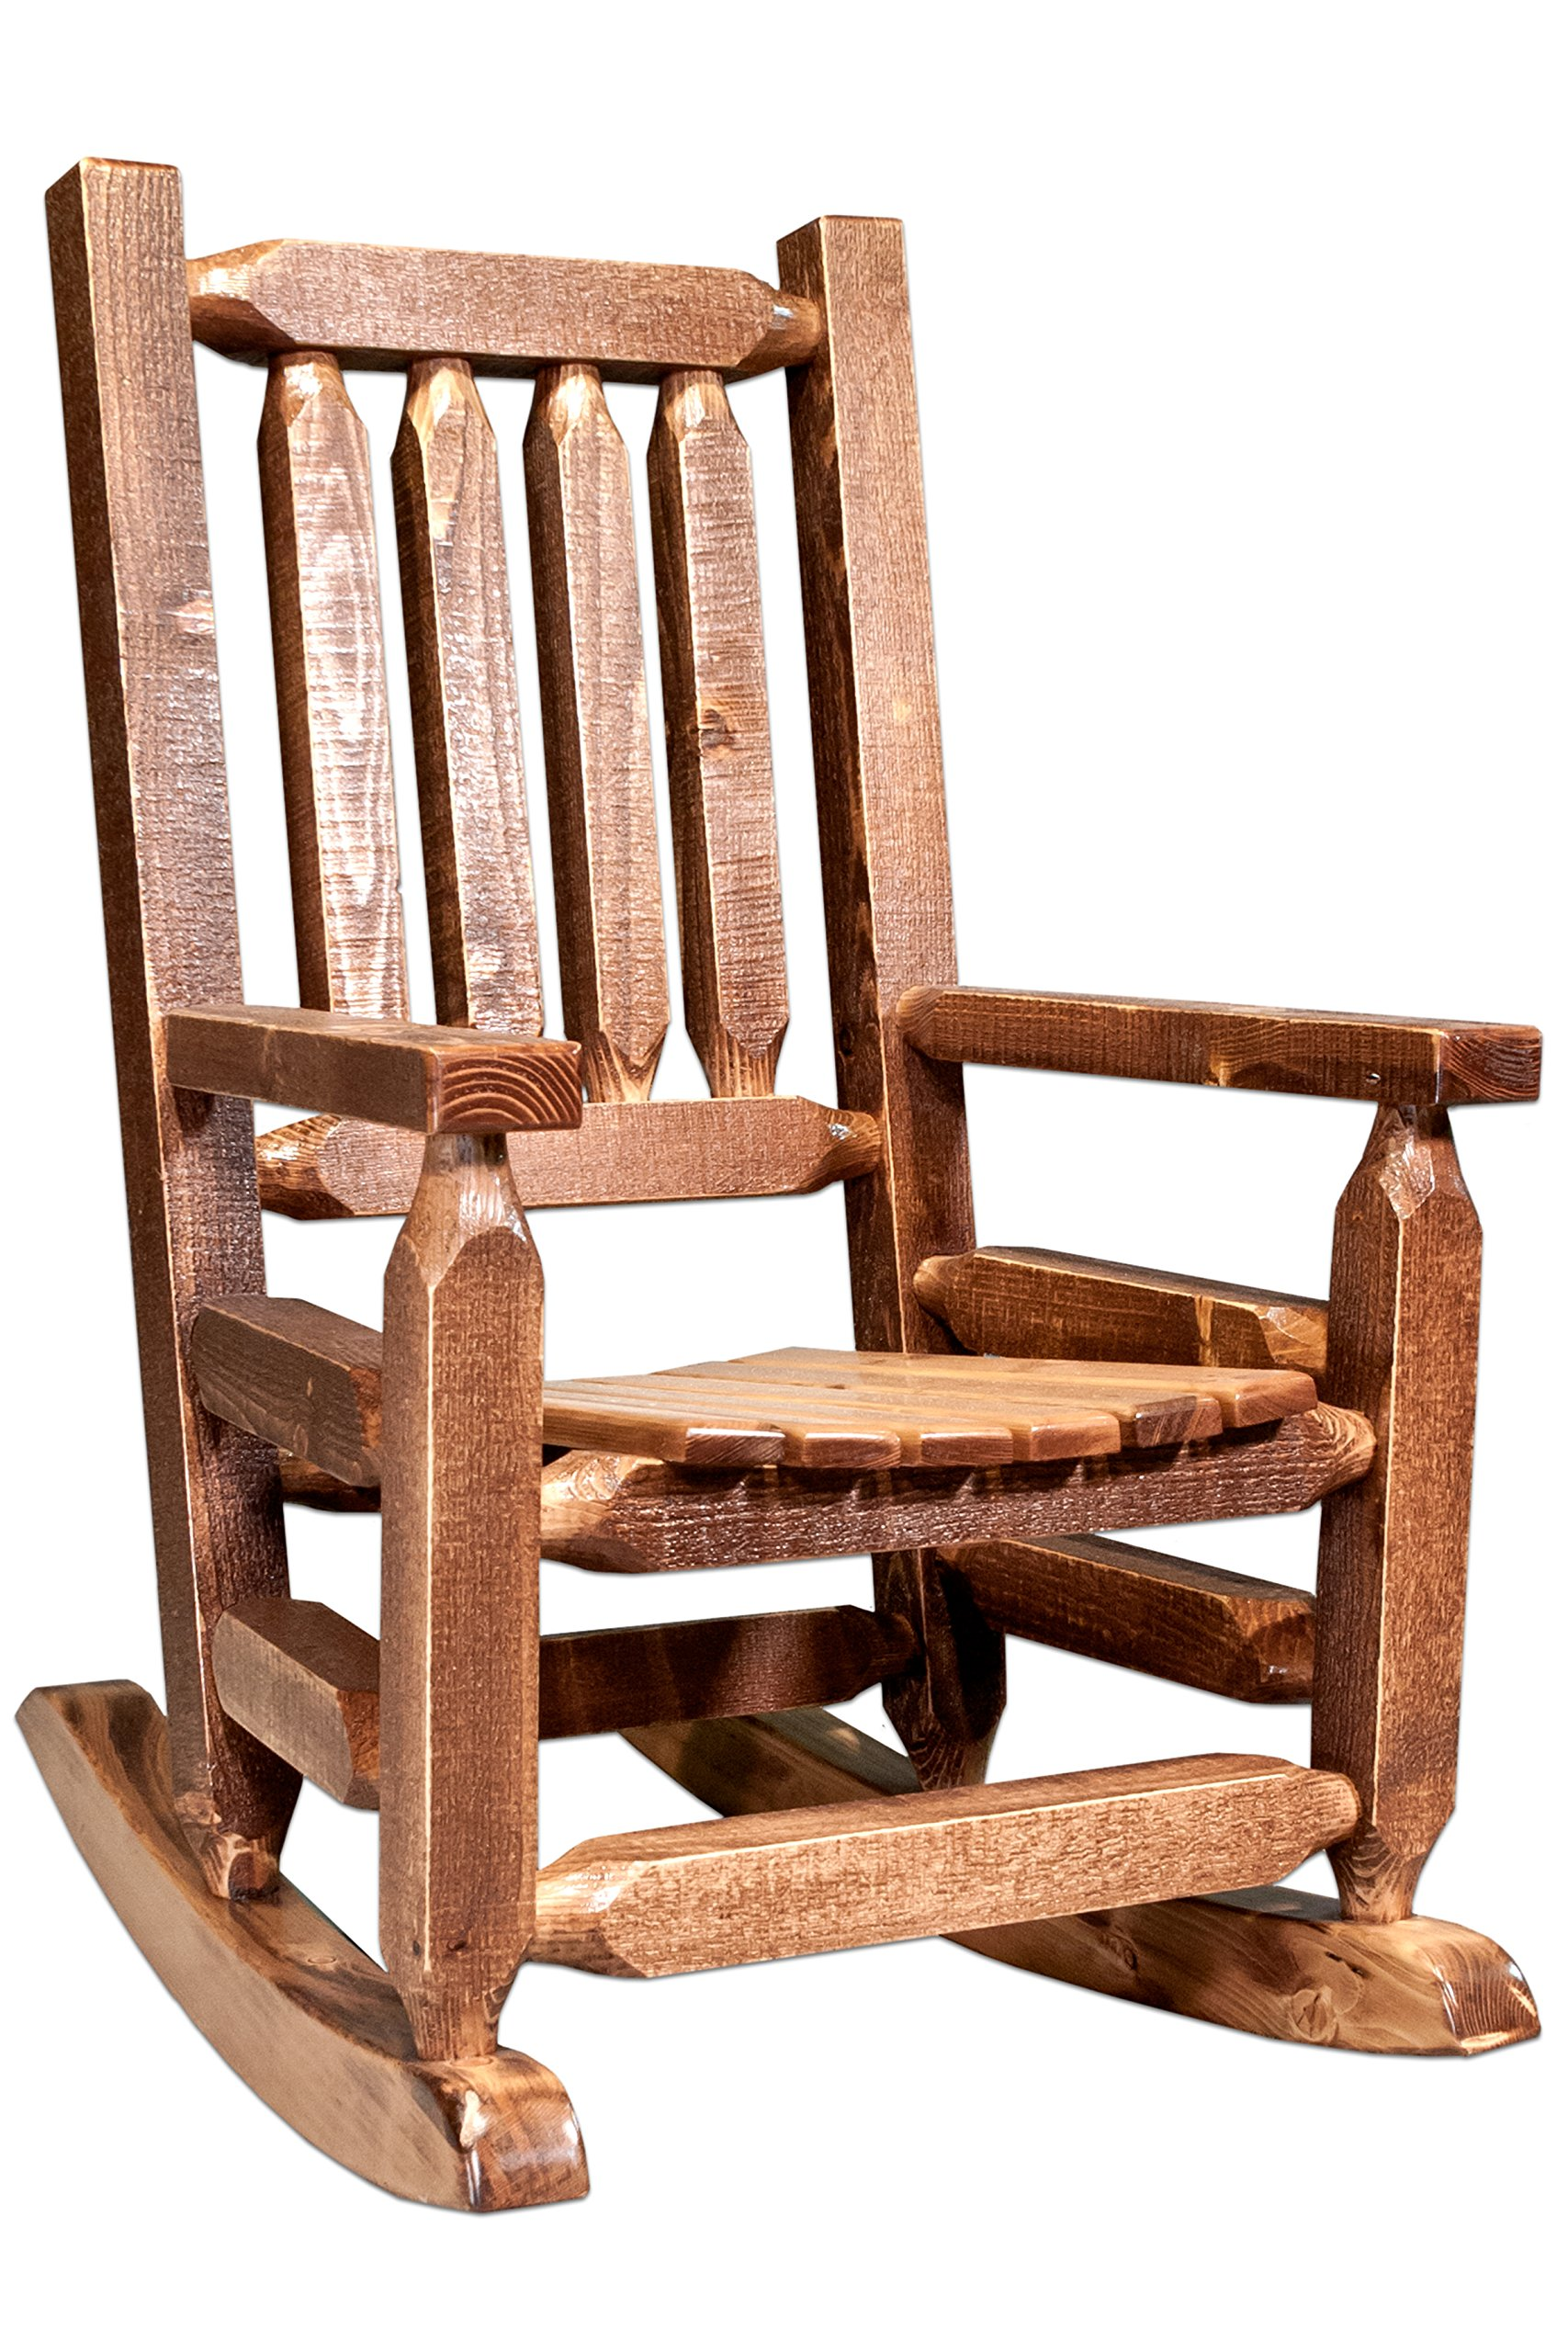 Montana Woodworks MWHCKRSSLAZ Child's Chair, Stain and Lacquer Finish